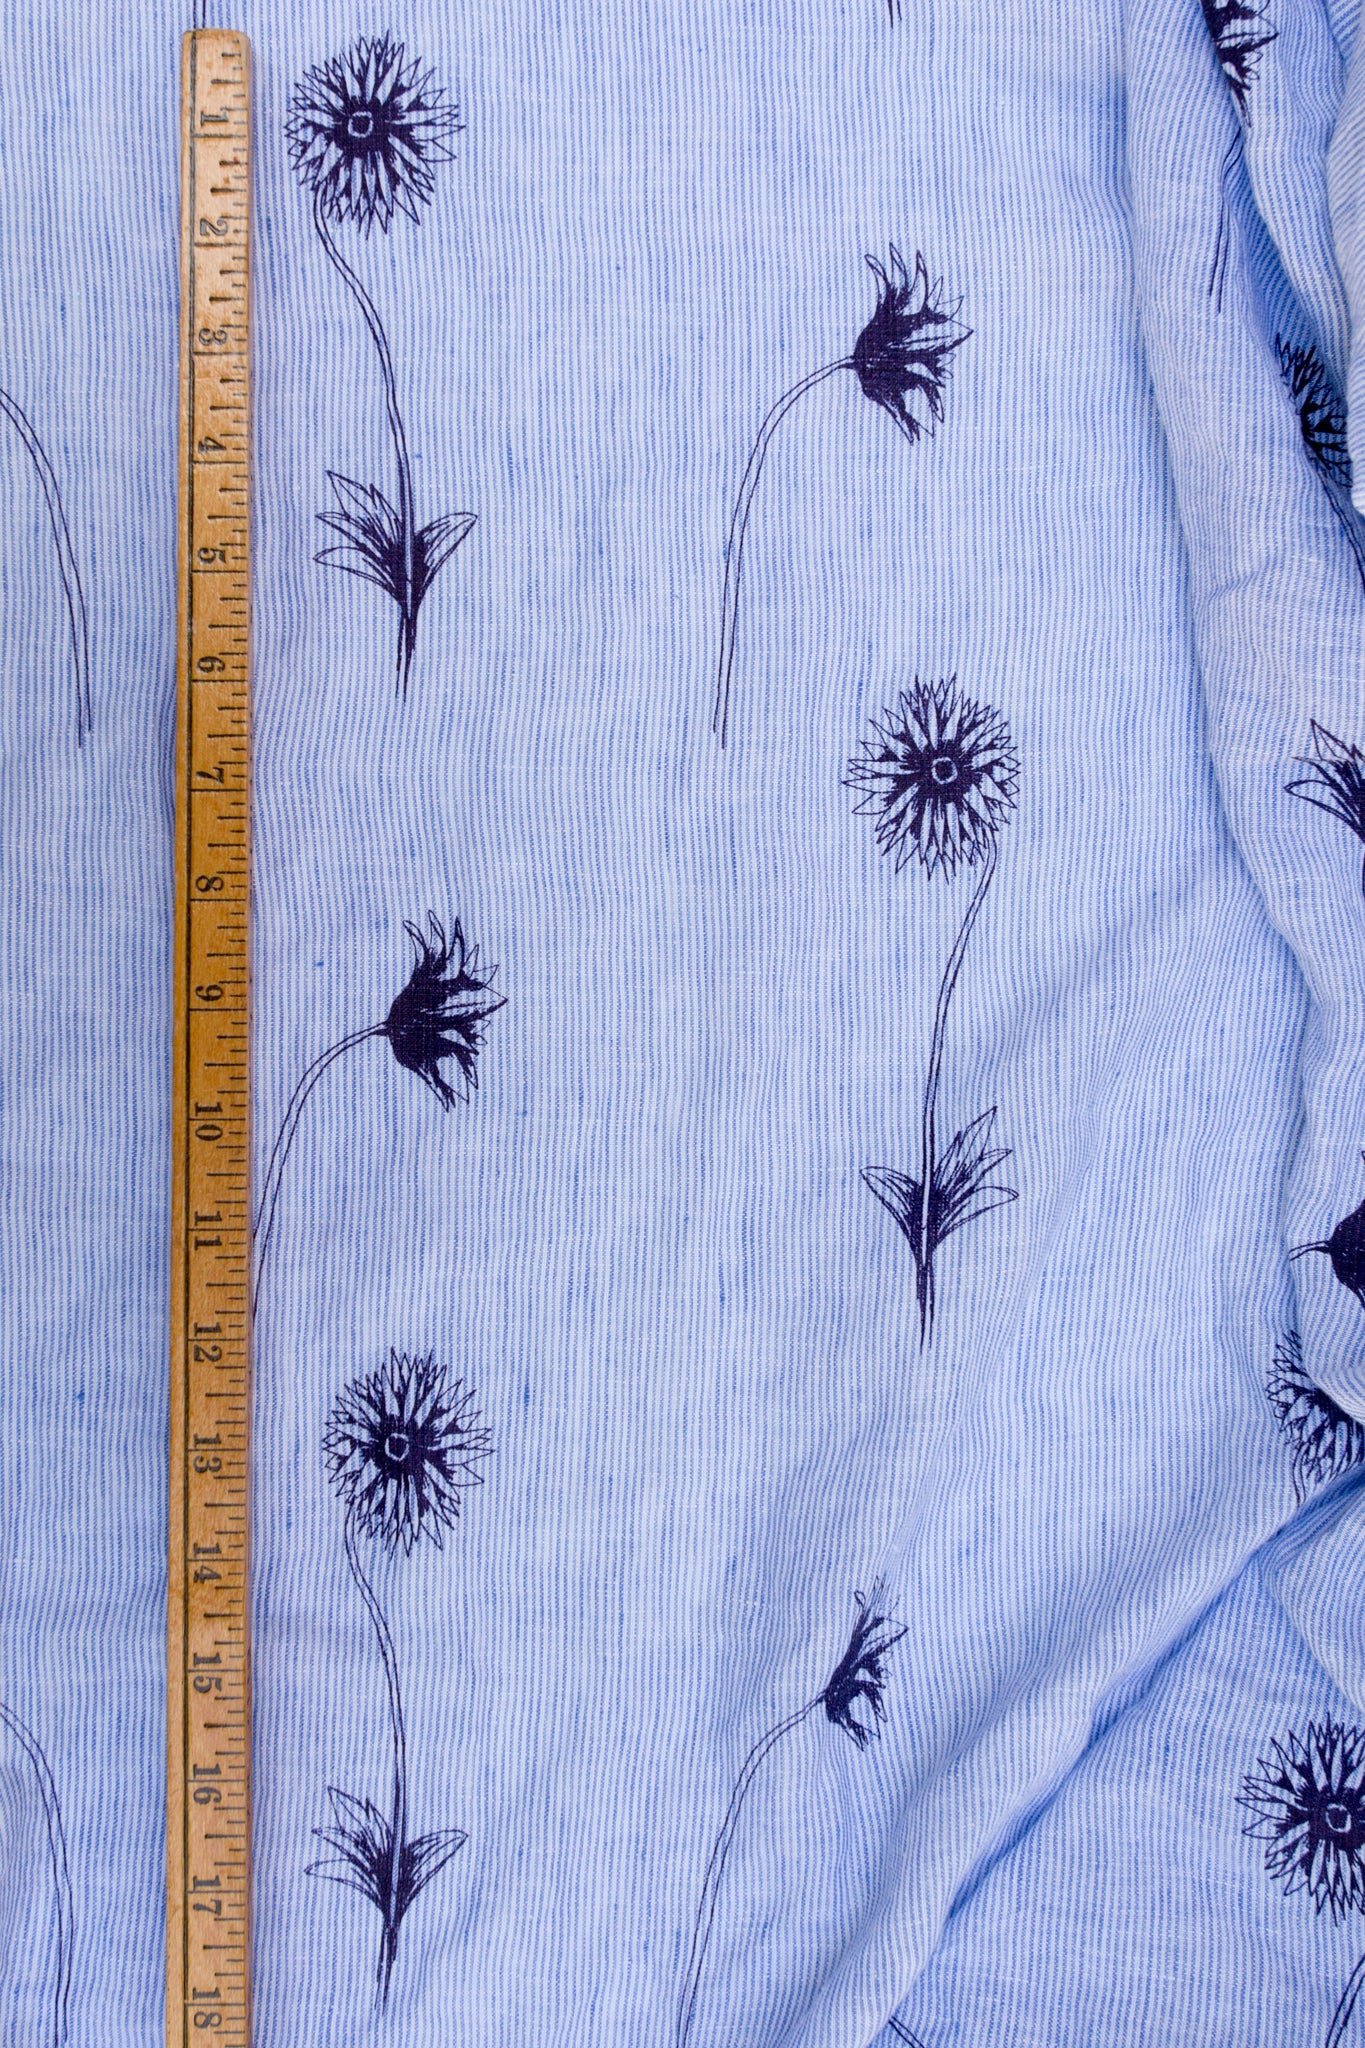 Apparel-Weight Linen: Spring Flowers on Odette Stripe